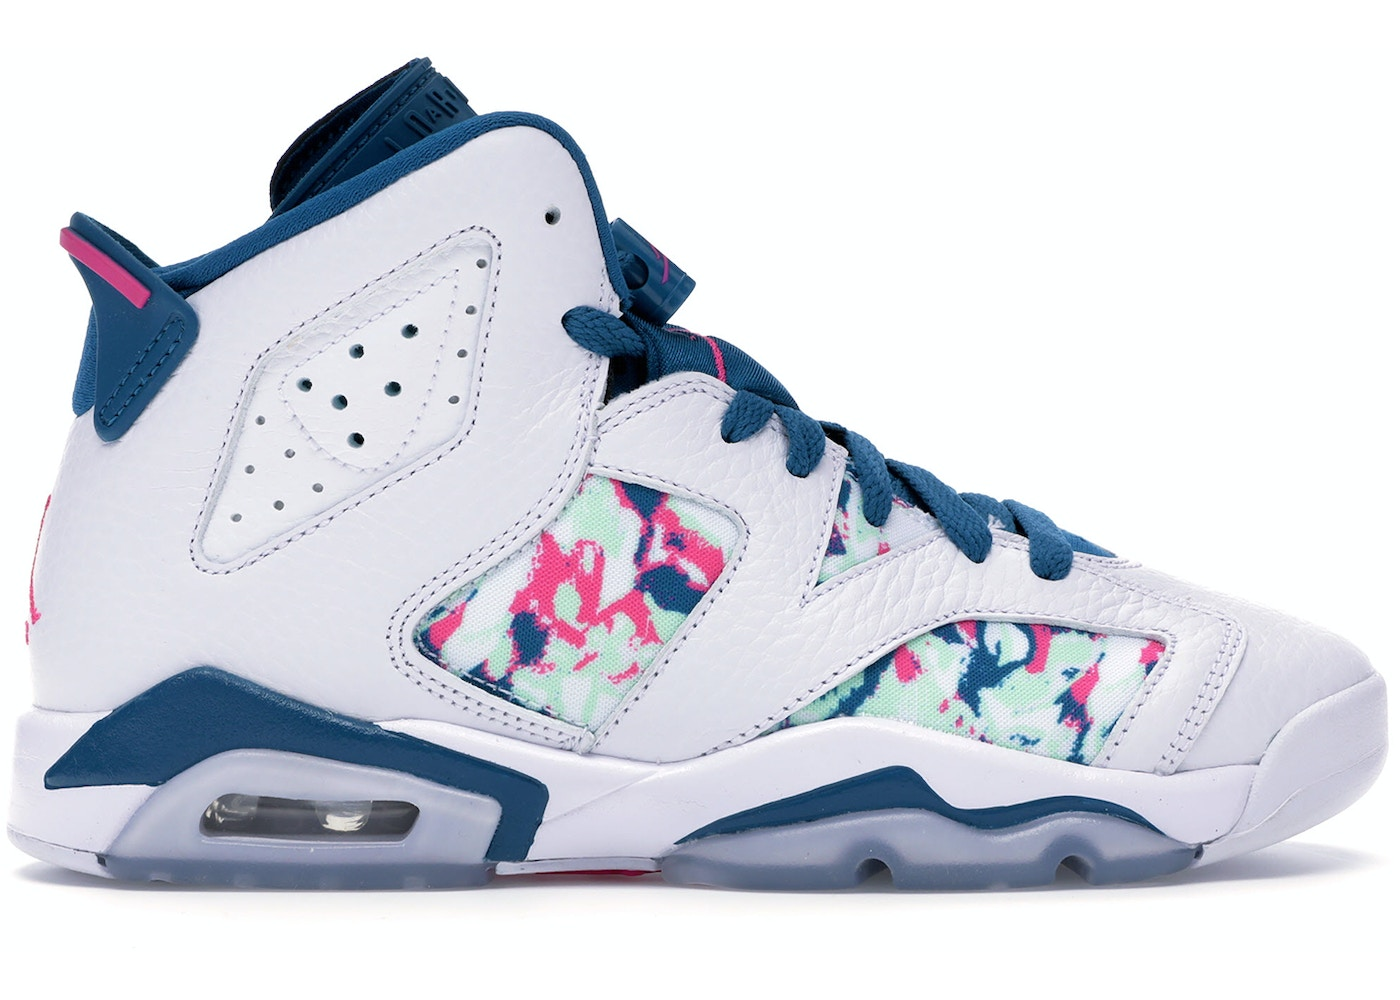 wholesale dealer 7d24f b413b Jordan 6 Retro White Laser Fuchsia Green Abyss (GS)